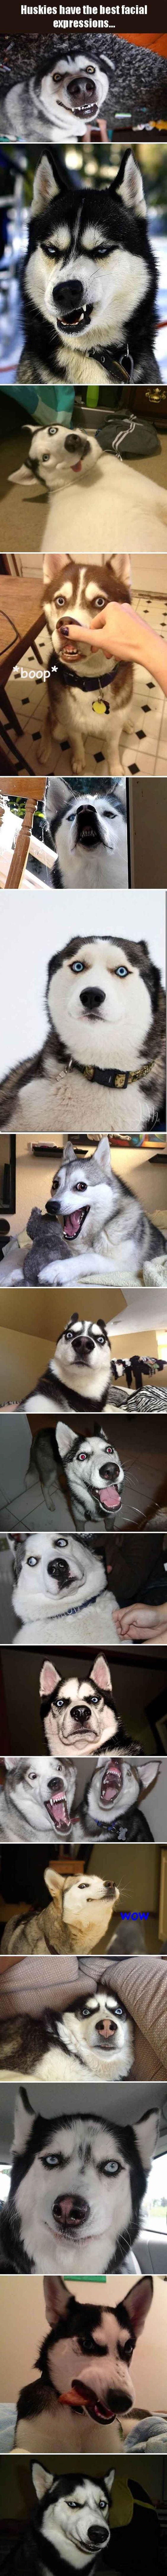 Huskies Have The Best Facial Expressions  17 Pics: